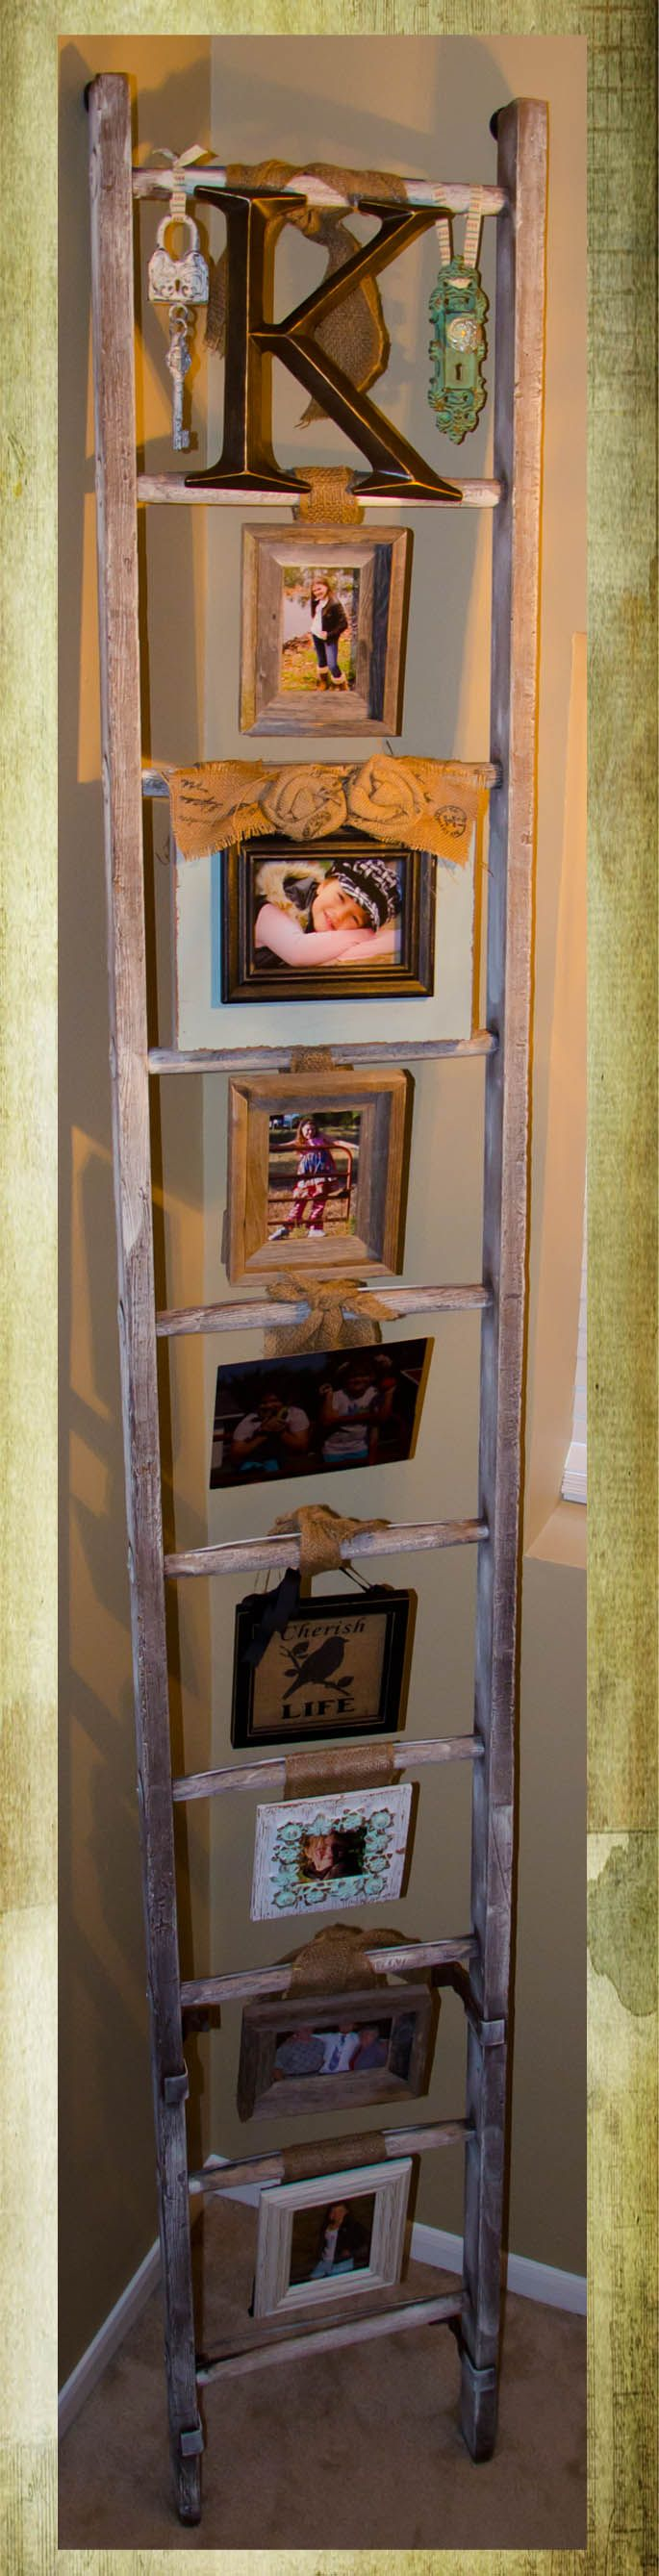 Old ladder repurposed as a photo display!